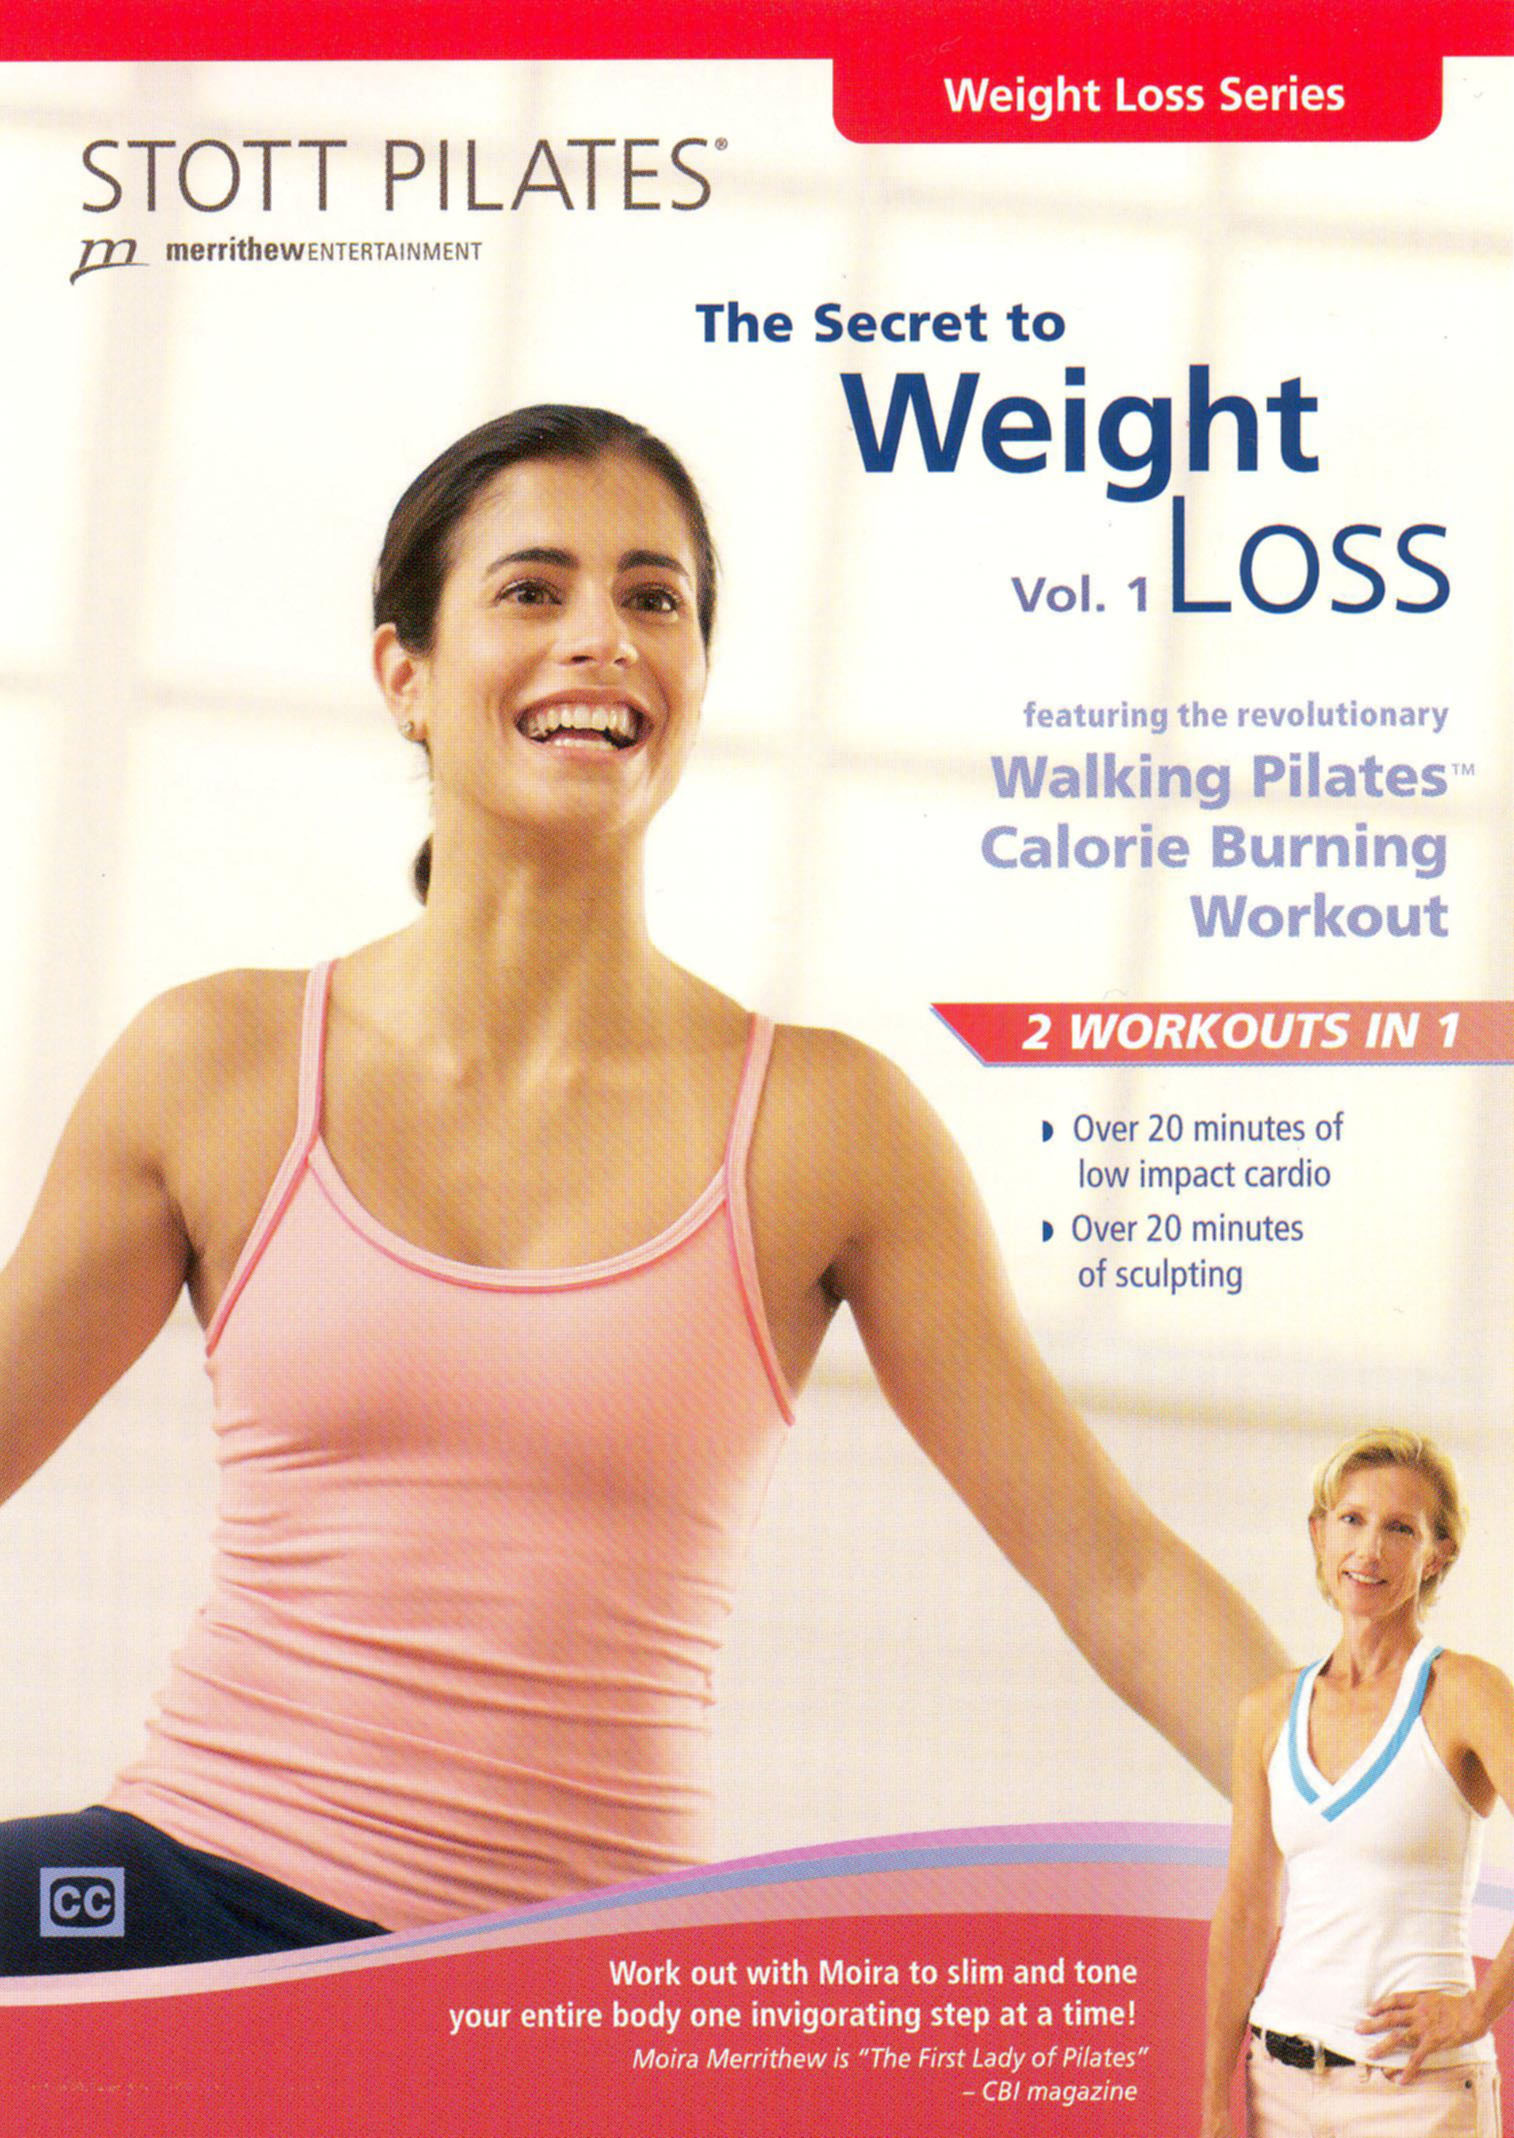 Stott Pilates: The Secret to Weight Loss, Vol. 1